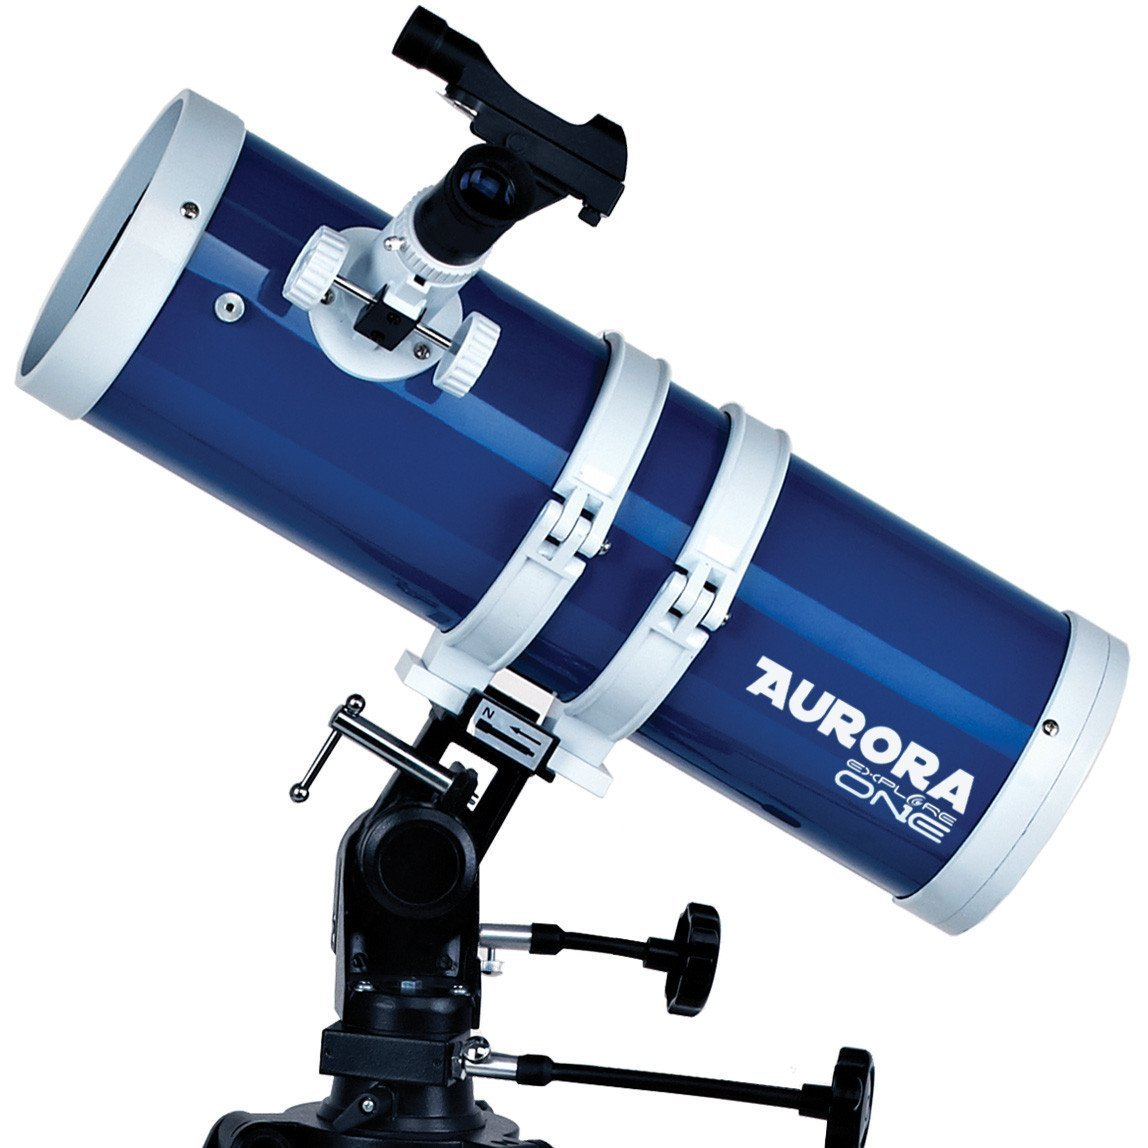 ExploreOne Telescope, 114mm Apeture Astronomy Reflector Telescope 500mm AZ Mount, Travel Scope with Tripod & Finder Scope, Good Partner to View Moon and Planet by EXPLORE ONE